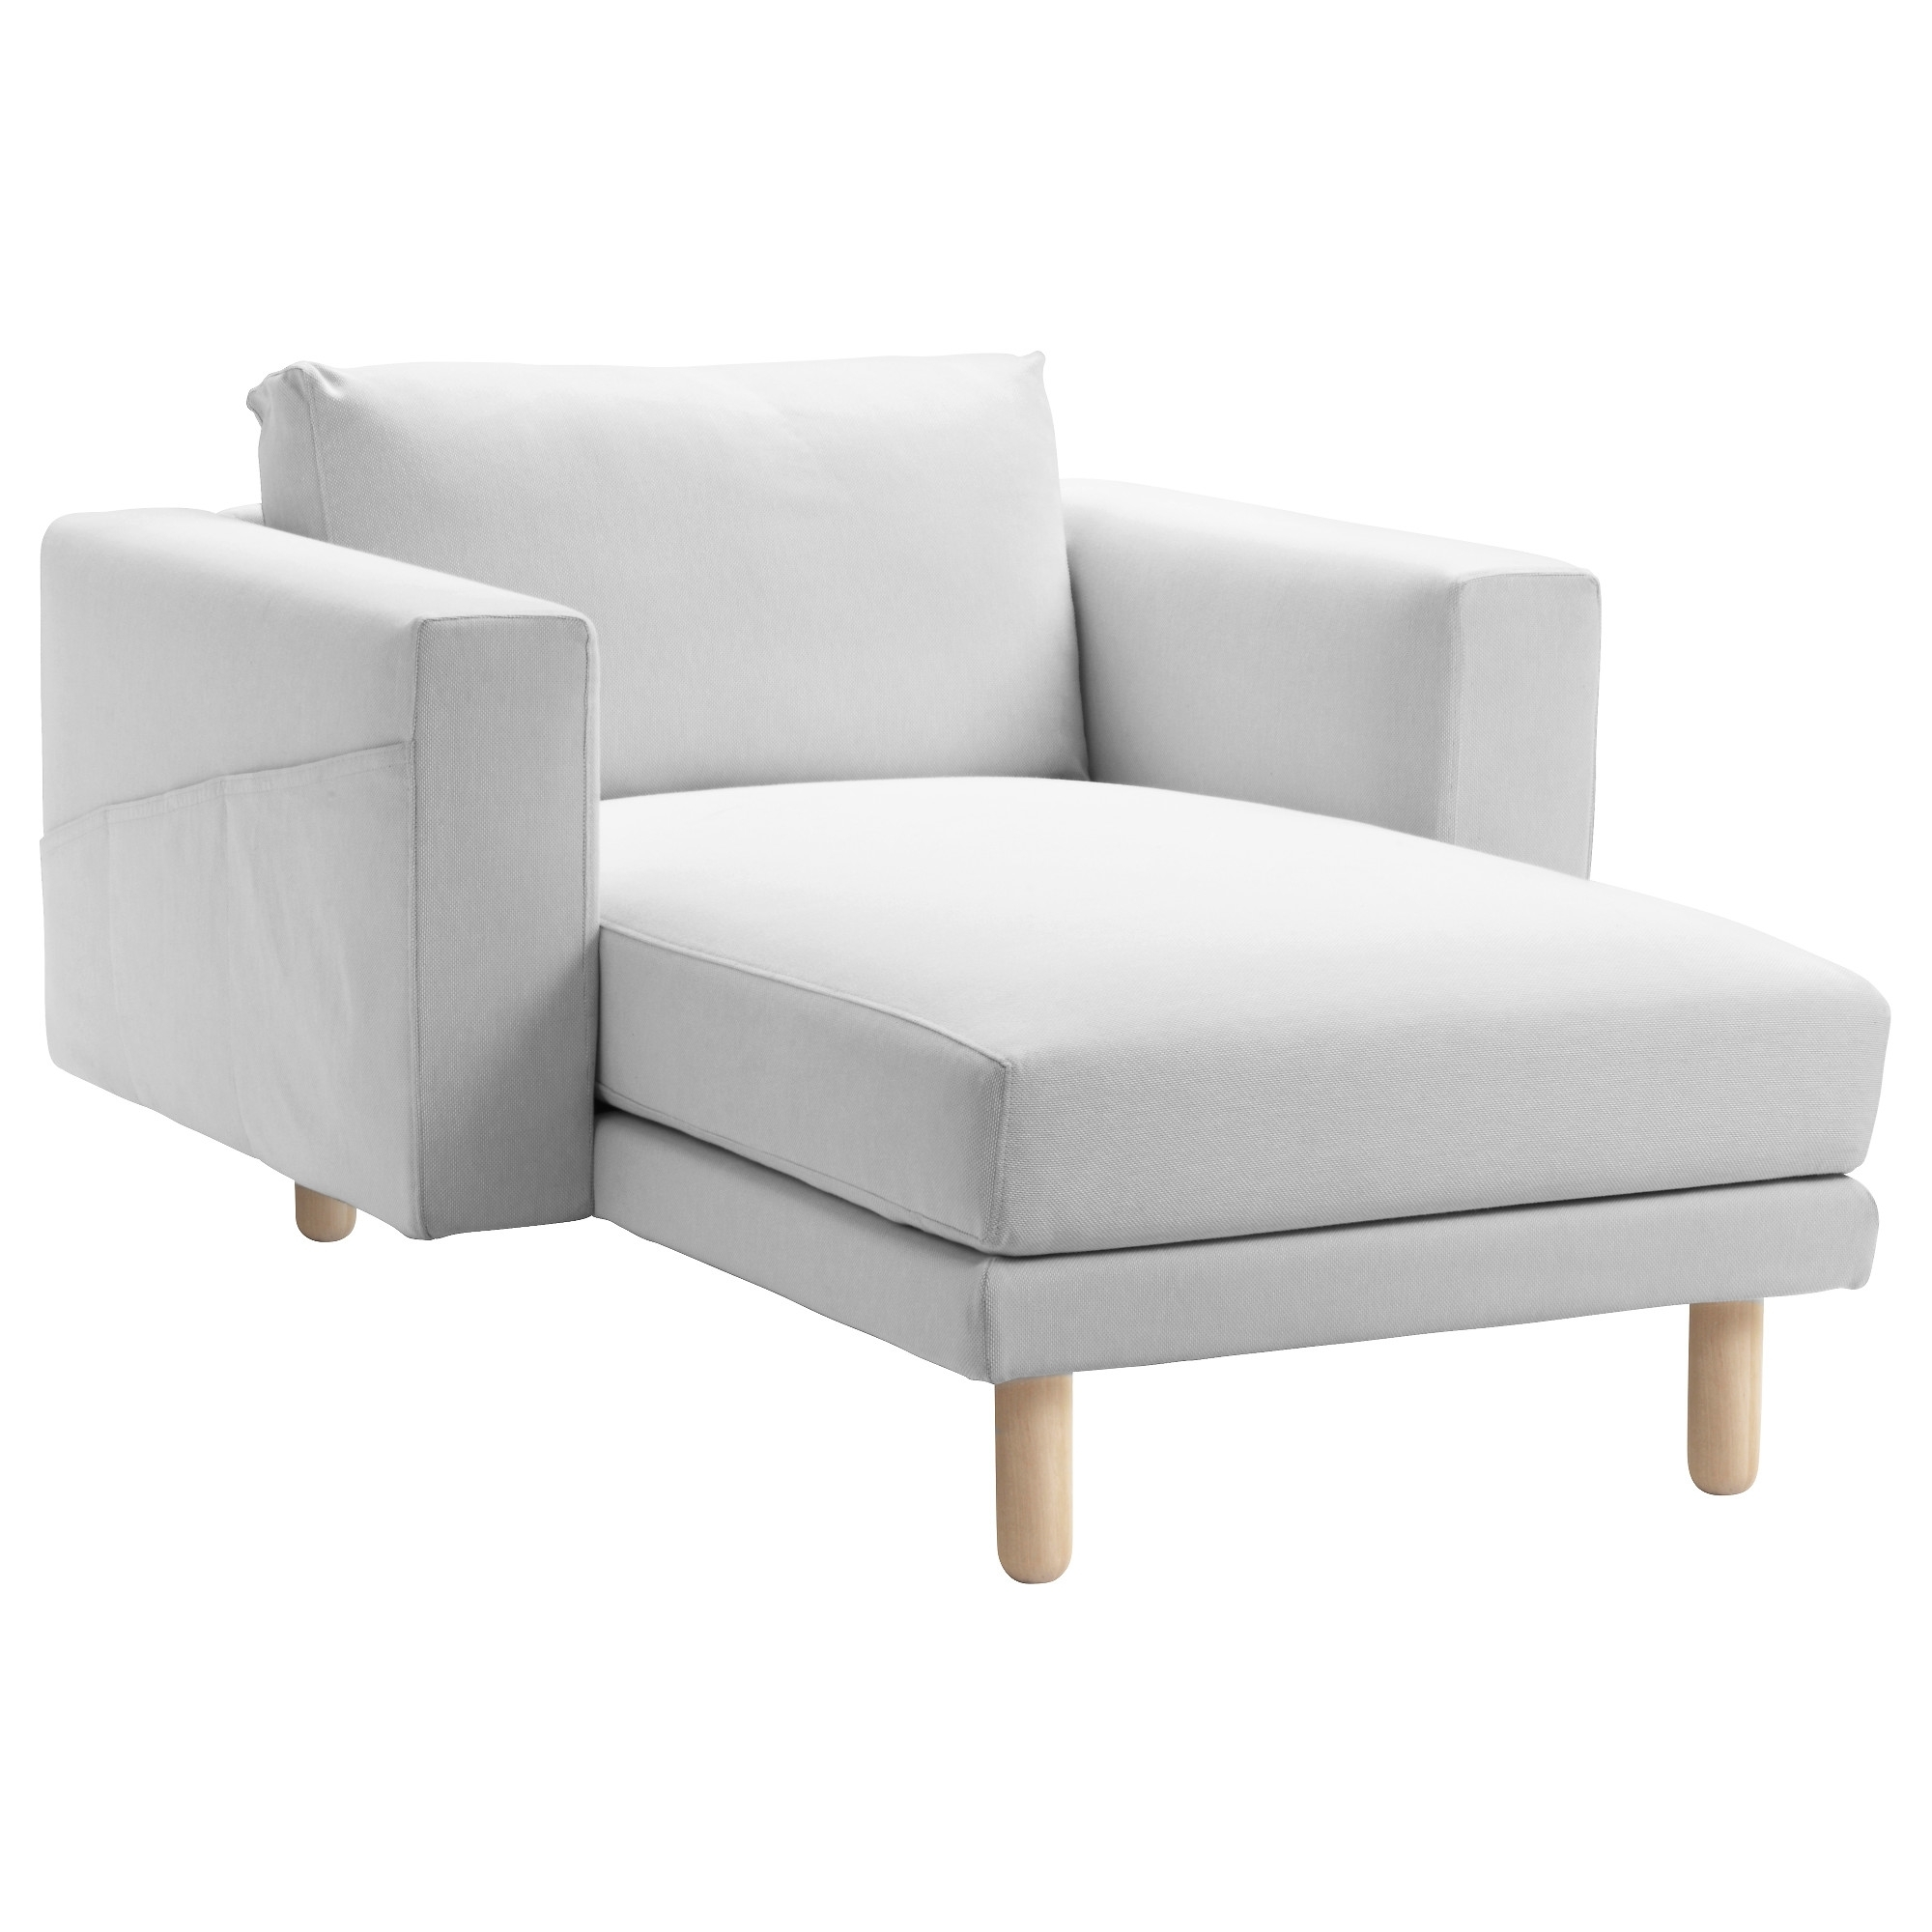 Best And Newest Norsborg Cover For Chaise Longue Finnsta White – Ikea For Ikea Chaise Longues (View 9 of 15)